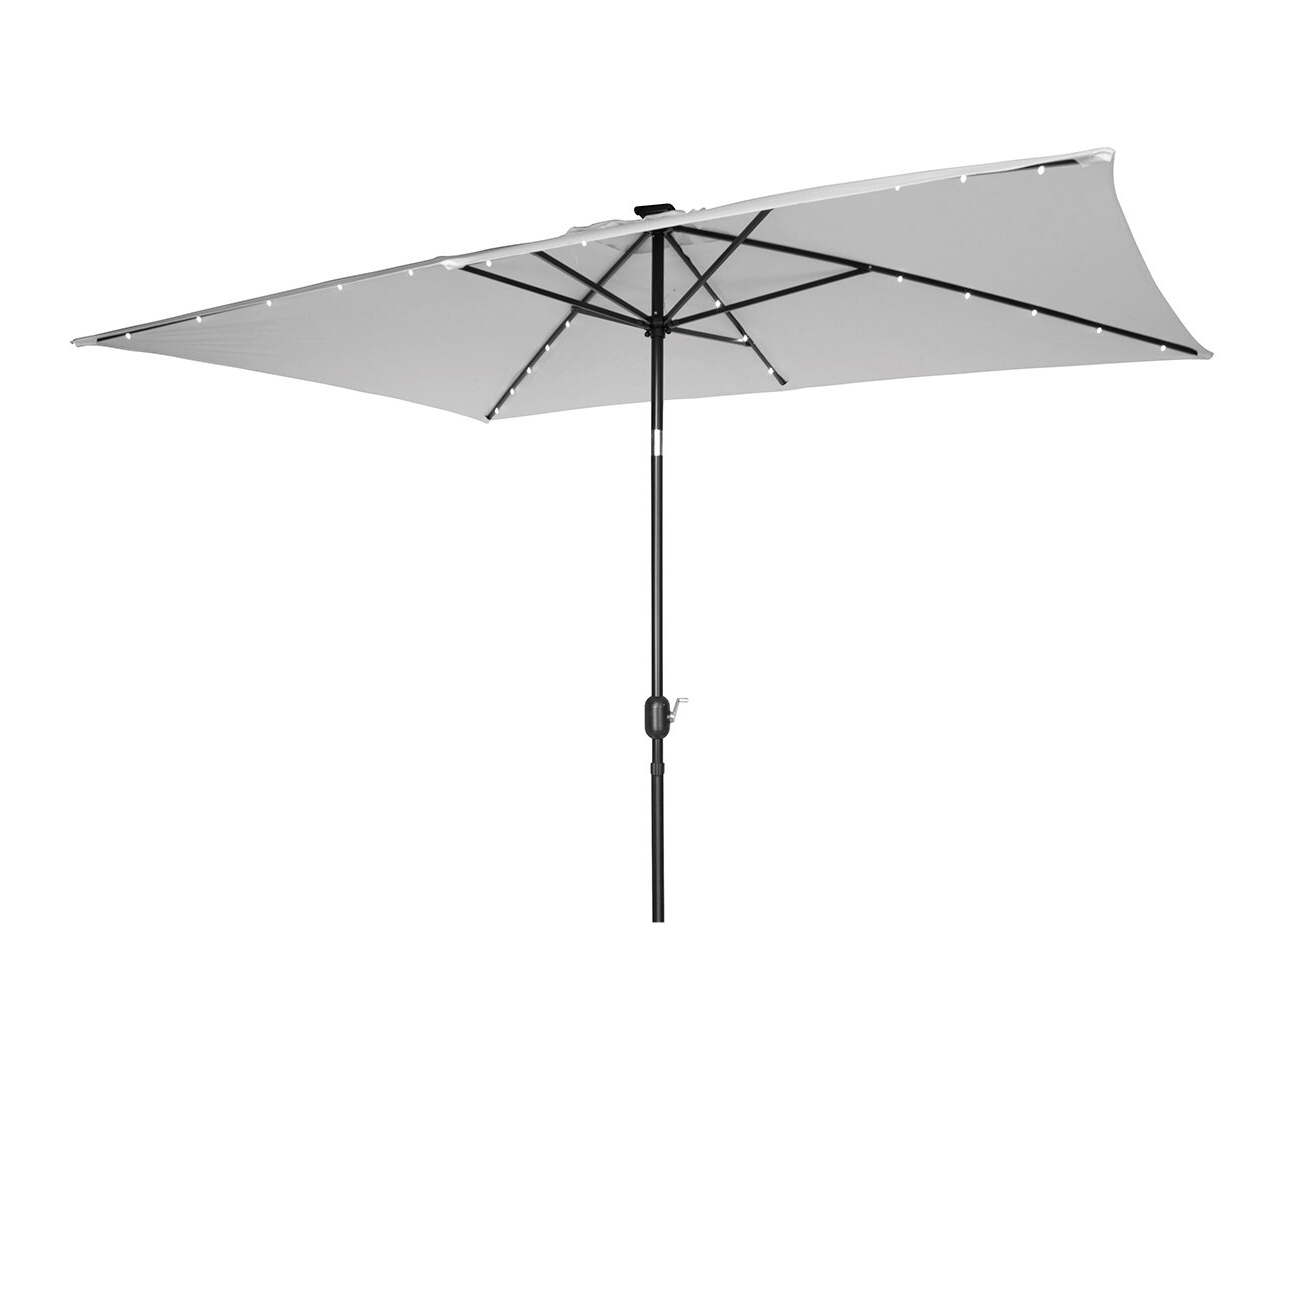 Cordelia Rectangular Market Umbrellas In 2020 Bangert 10' X  (View 3 of 20)